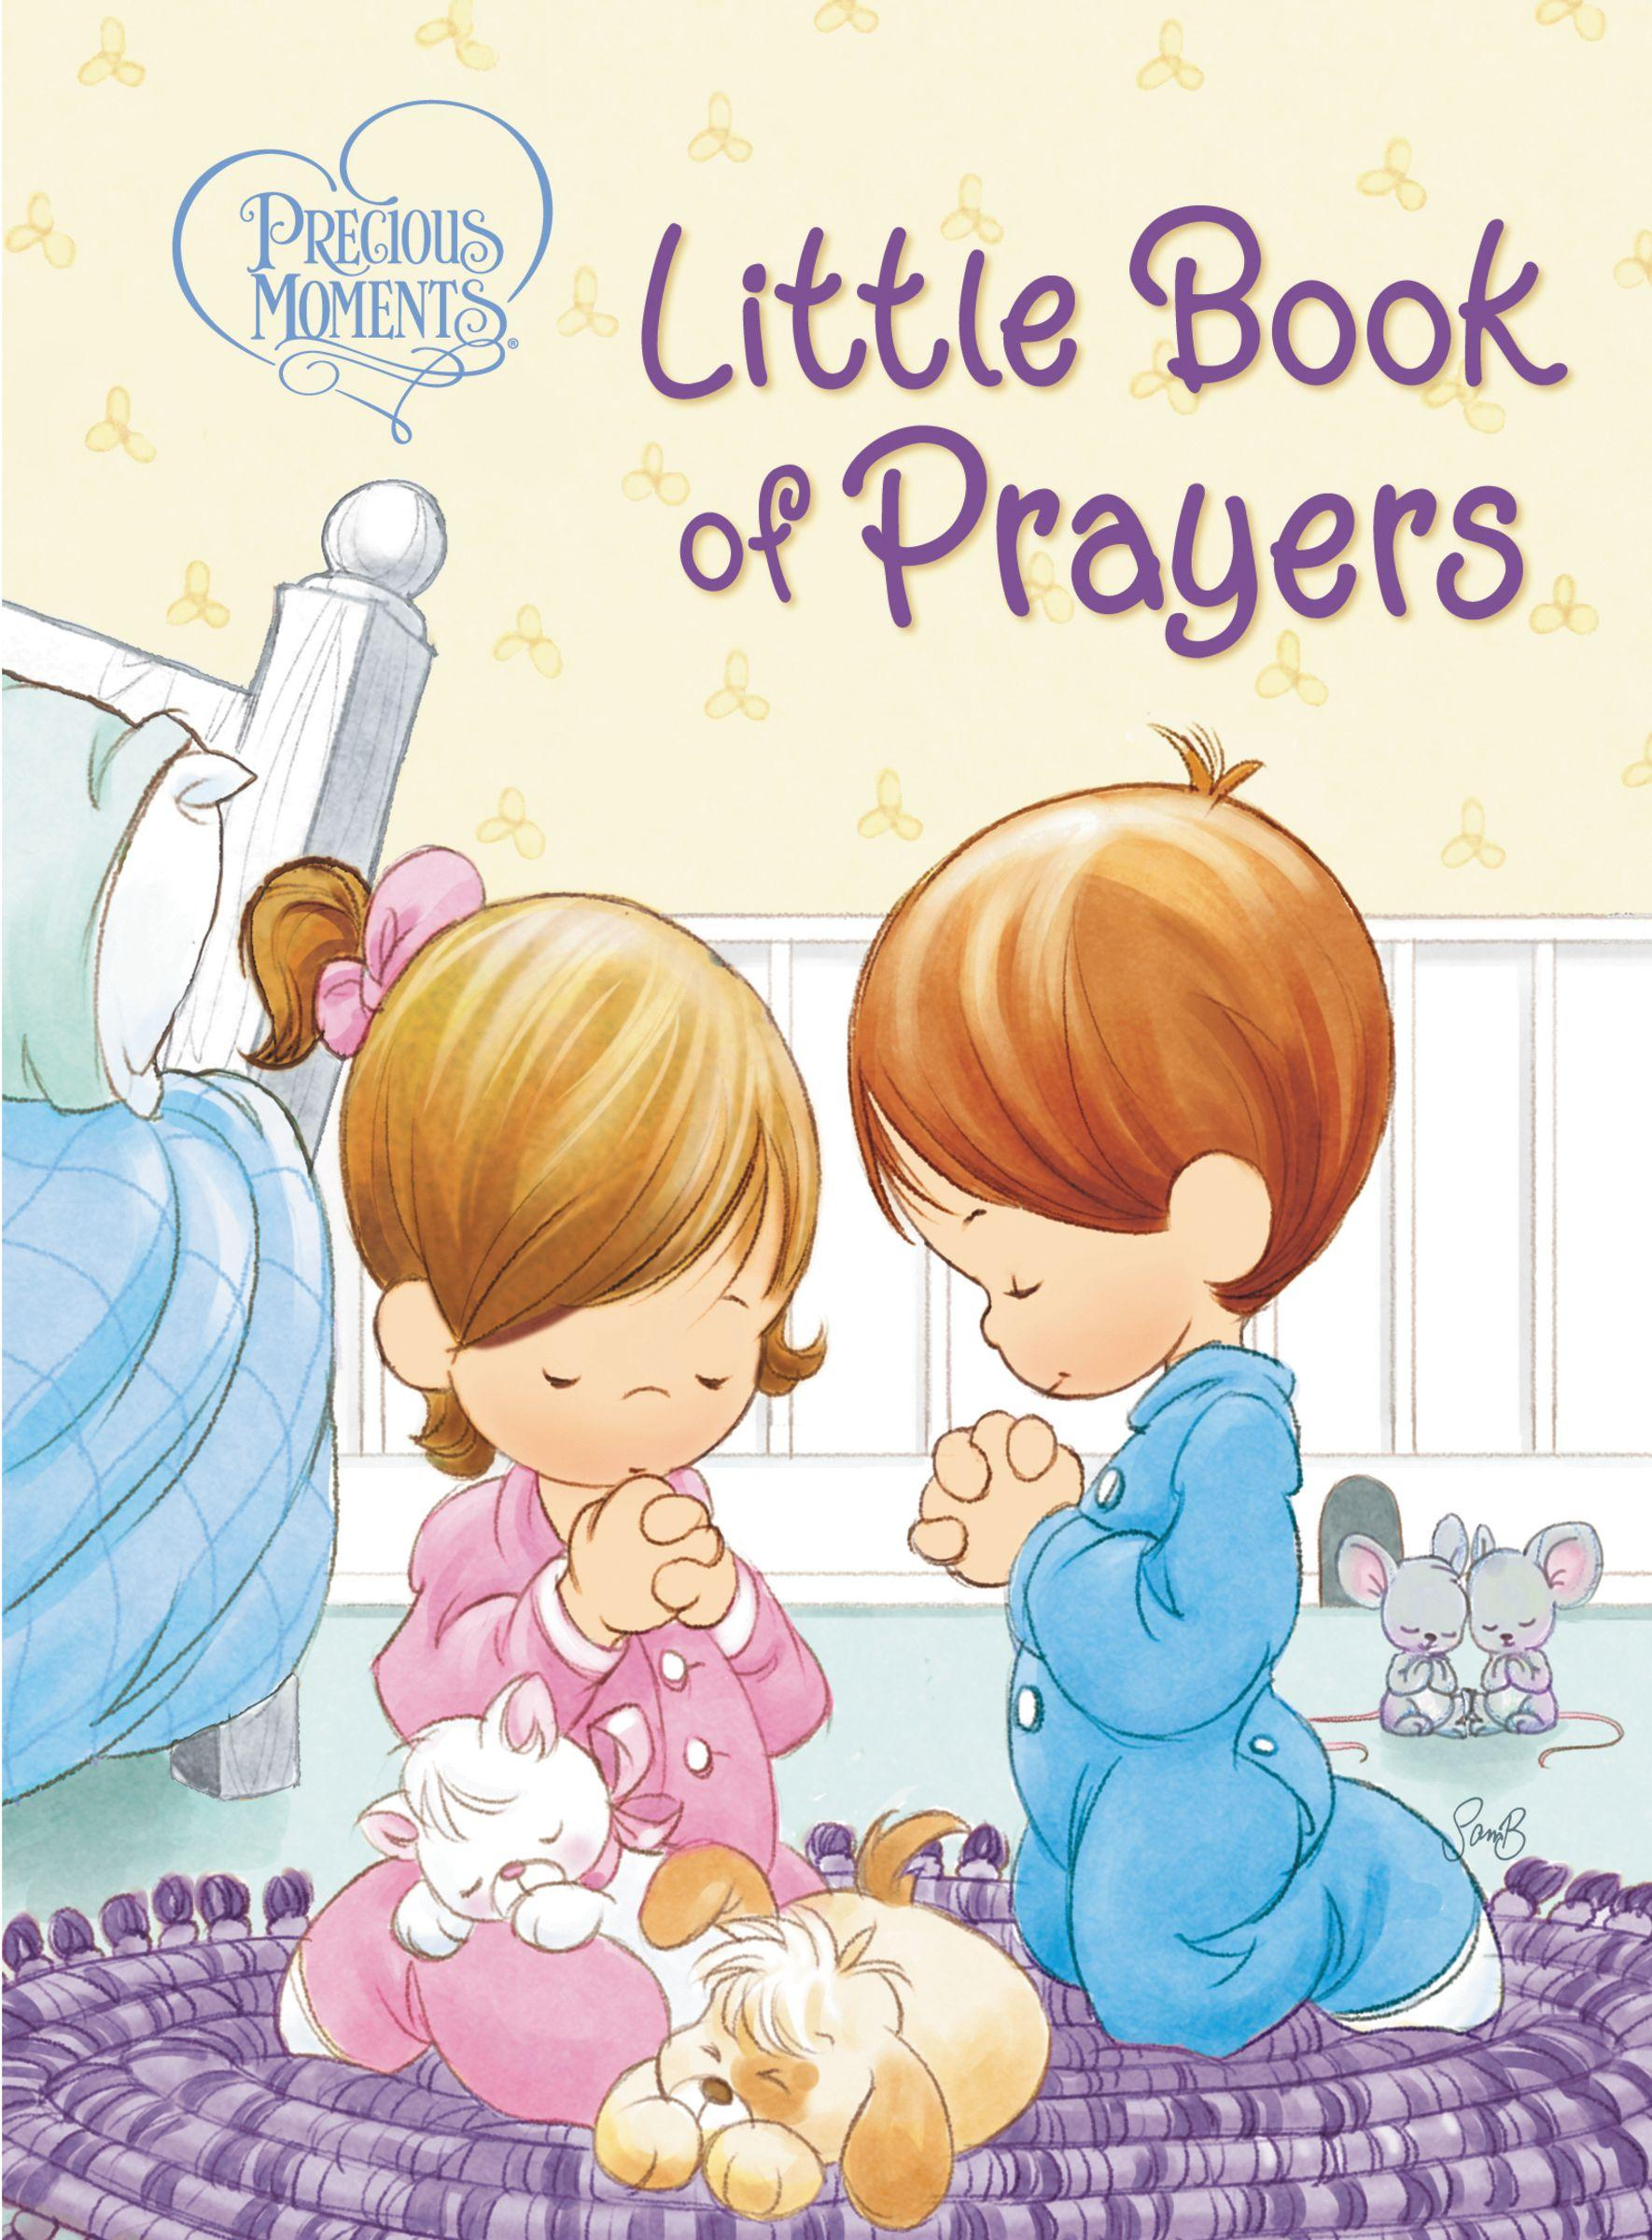 Precious Moments: Little Book of Prayers by NELSON/WORD PUB GROUP